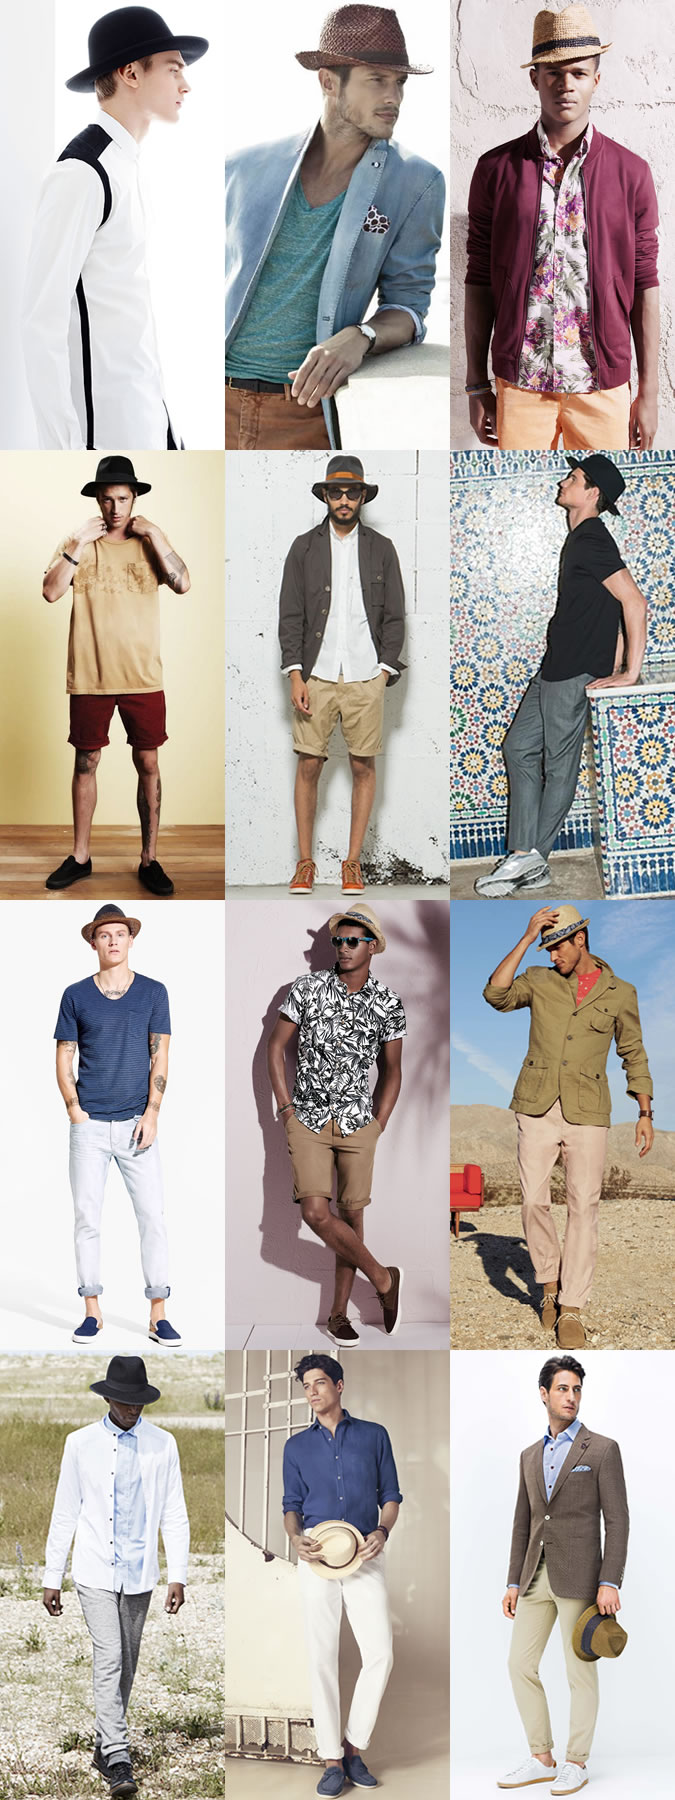 The Most Fashionable Men s Hats in 2015 Spring Summer - Men Fashion Hub 022ee28cbafd